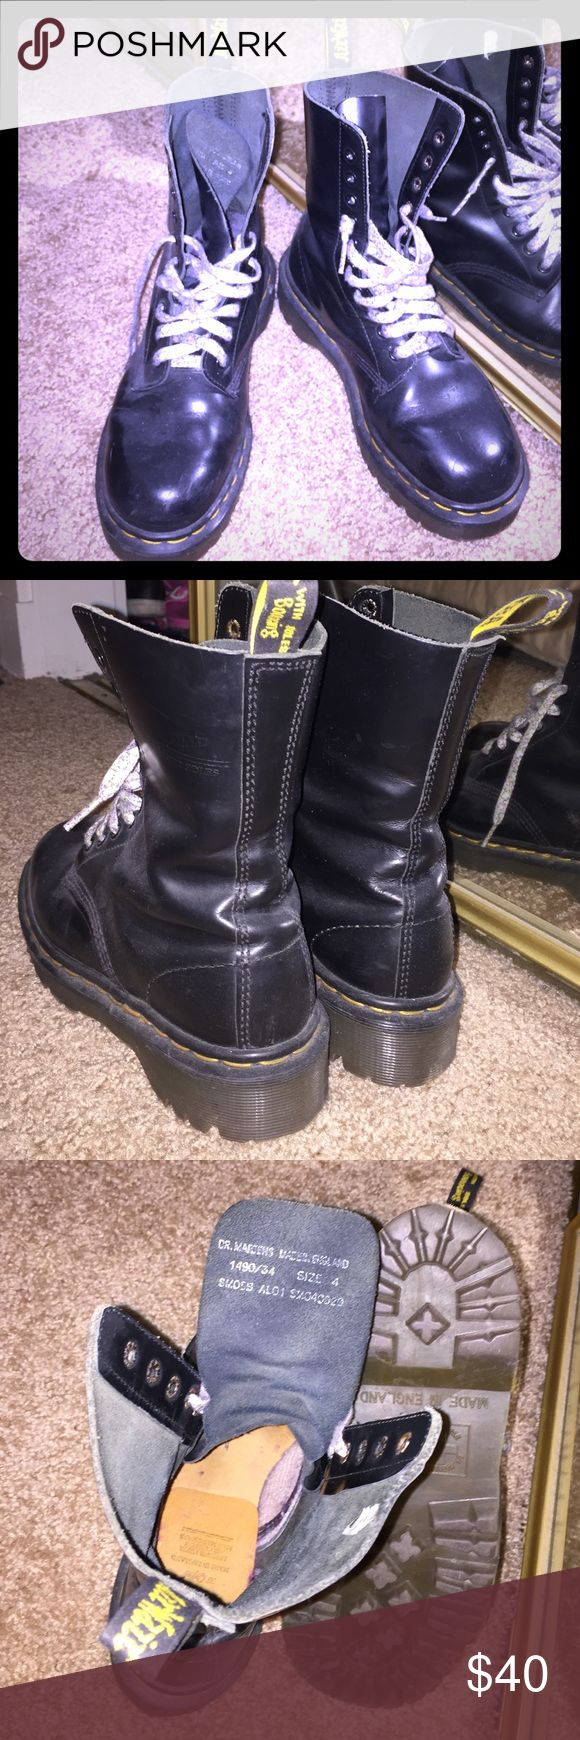 Authentic 90s Dr Martens military black boots Authentic 90s Dr Martens military black boots     Original shoe lace NOT included. Marked size 4. Fits women's US size 7. Made in England. dr martens Shoes Combat & Moto Boots